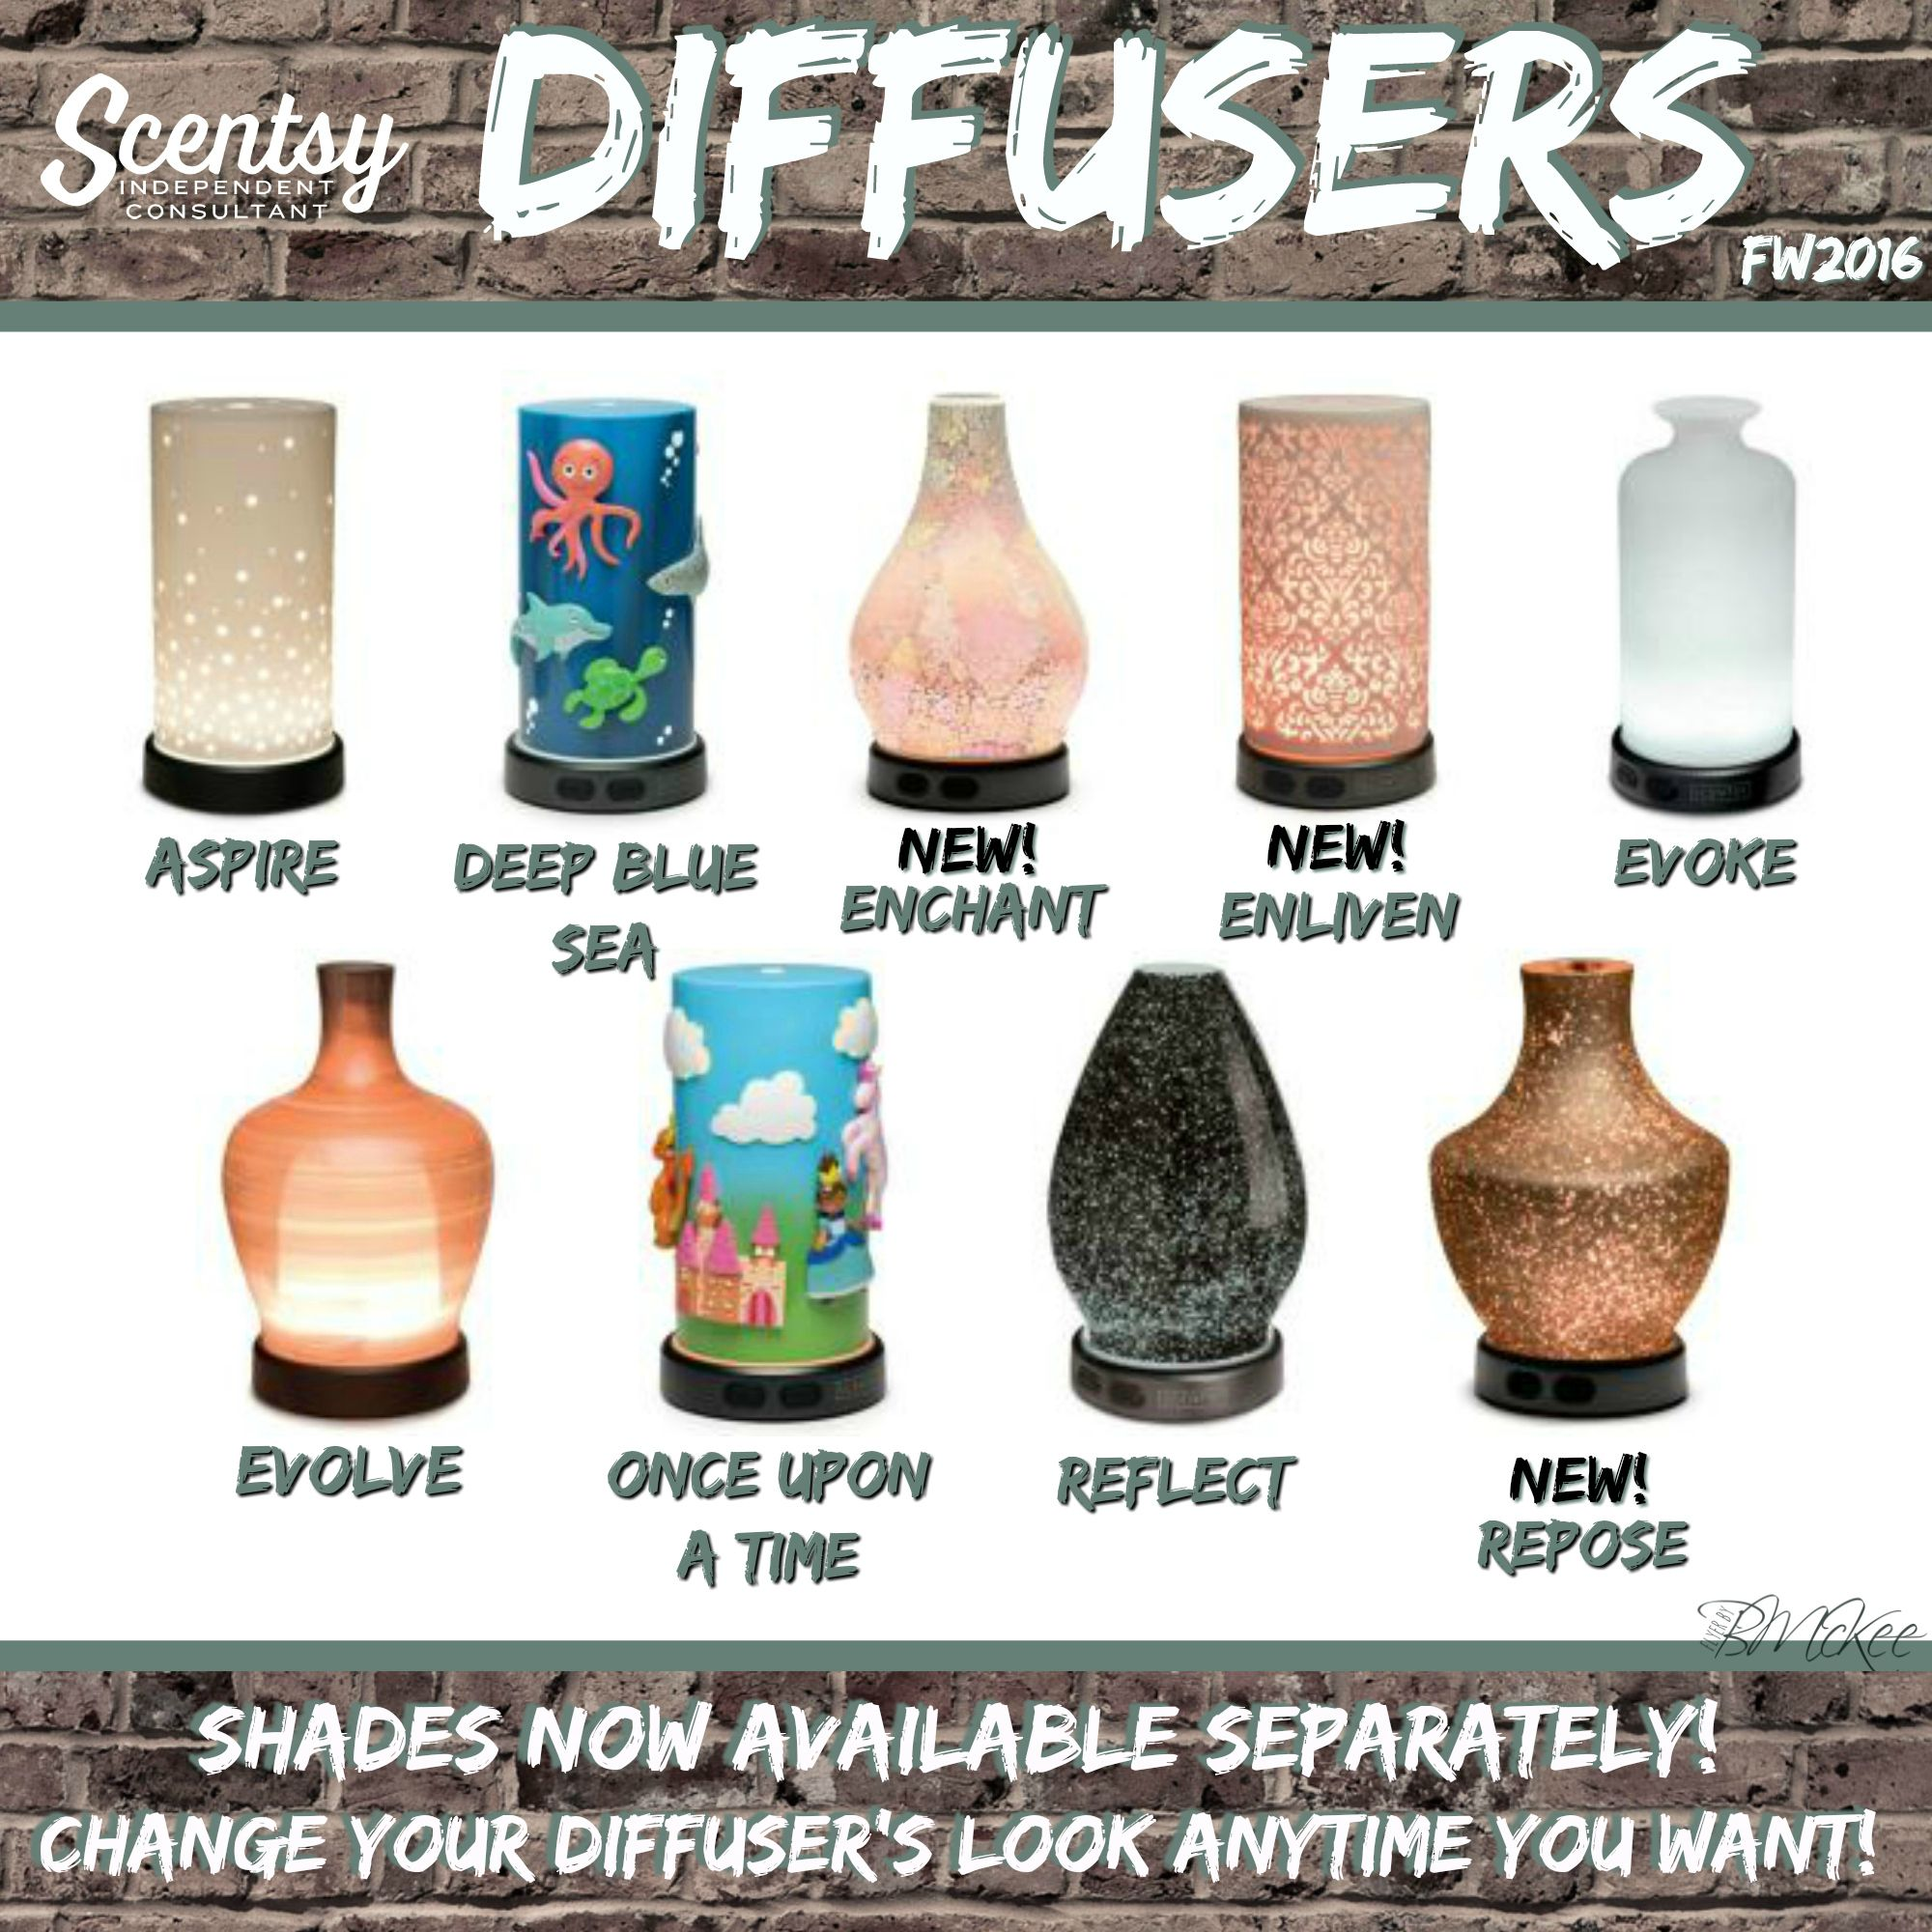 Scentsy Diffuser Sale February 2018 | Buy Scentsy Online